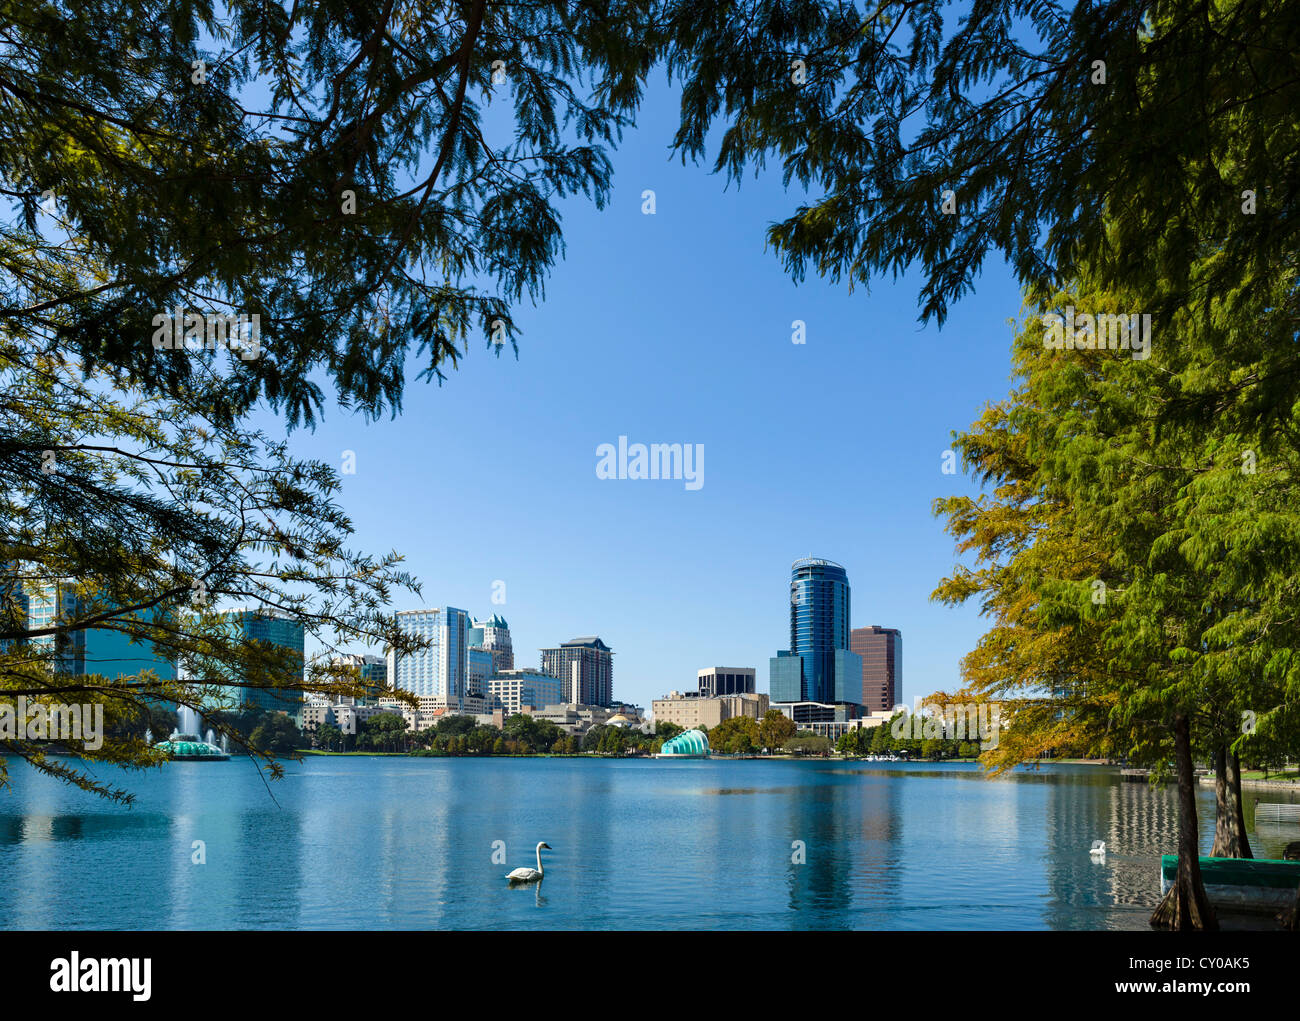 The downtown city skyline from Lake Eola Park, Orlando, Central Florida, USA - Stock Image